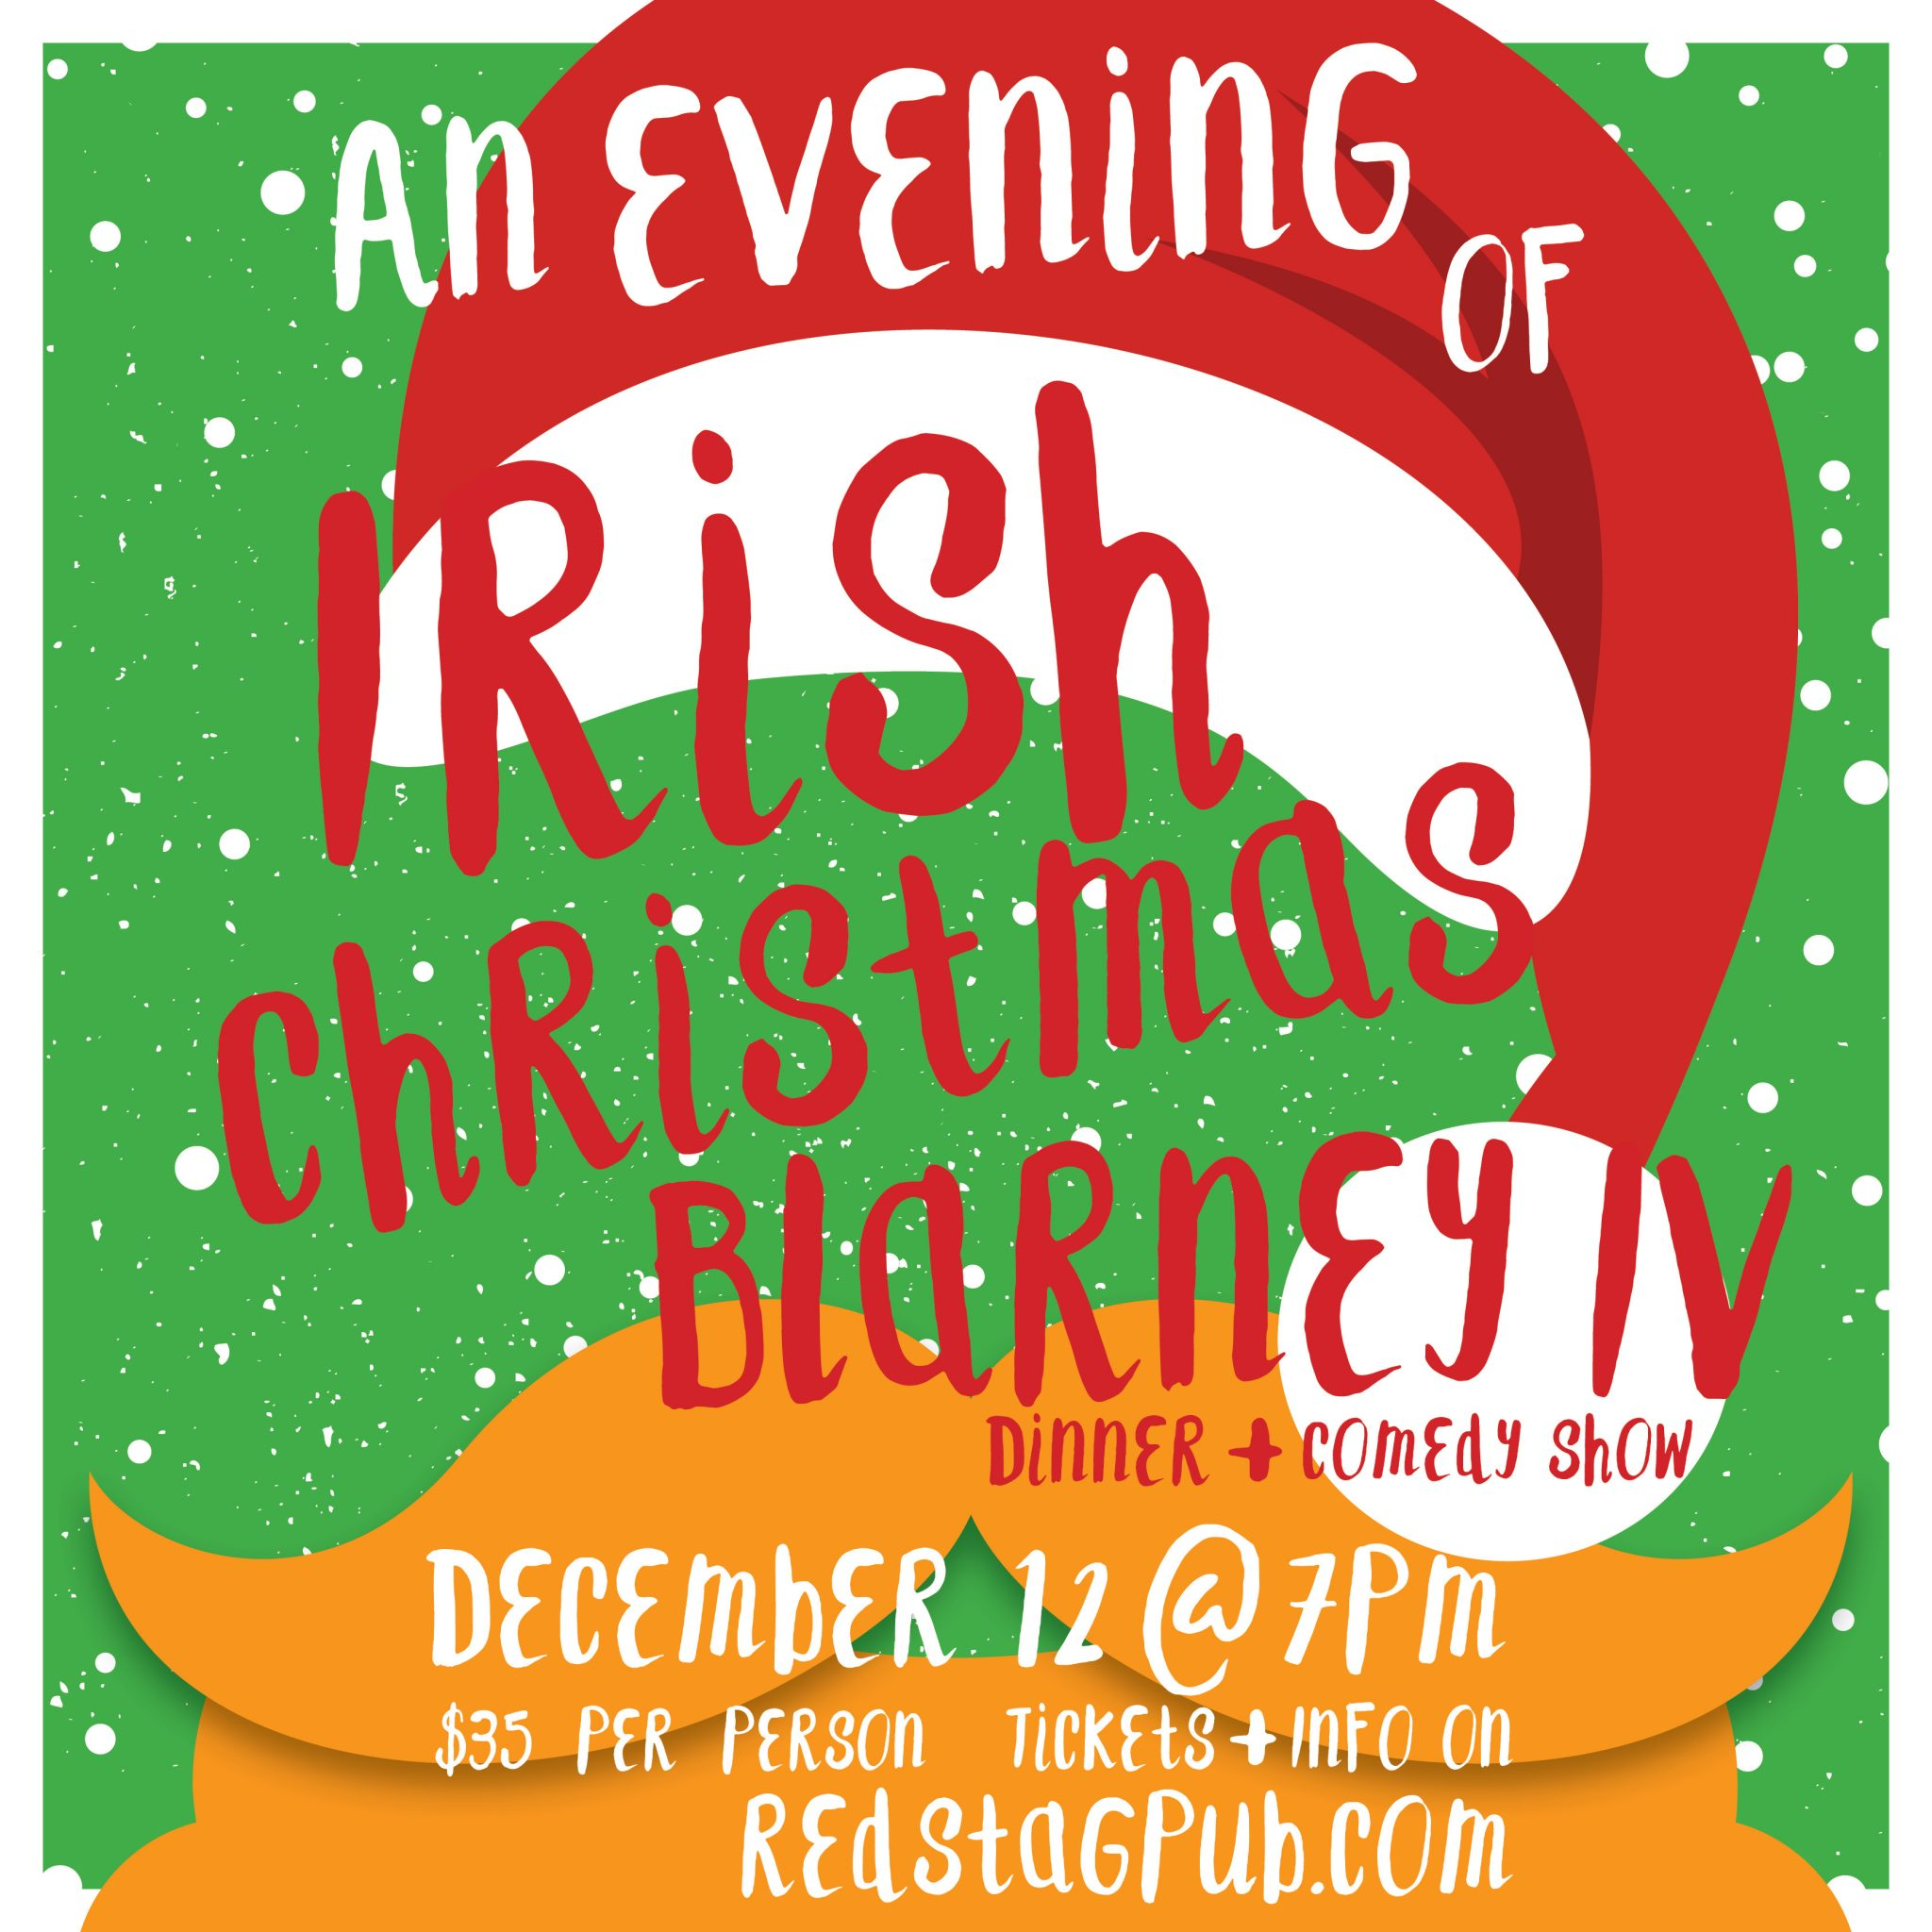 An Evening of Irish Christmas Blarney IV: Dinner + Comedy Show - December 12 at 7pm, $35 per person, Starring Neville Gardner, Dennis Boyne, and Tom Gardner with special musical guest Regina Sayles